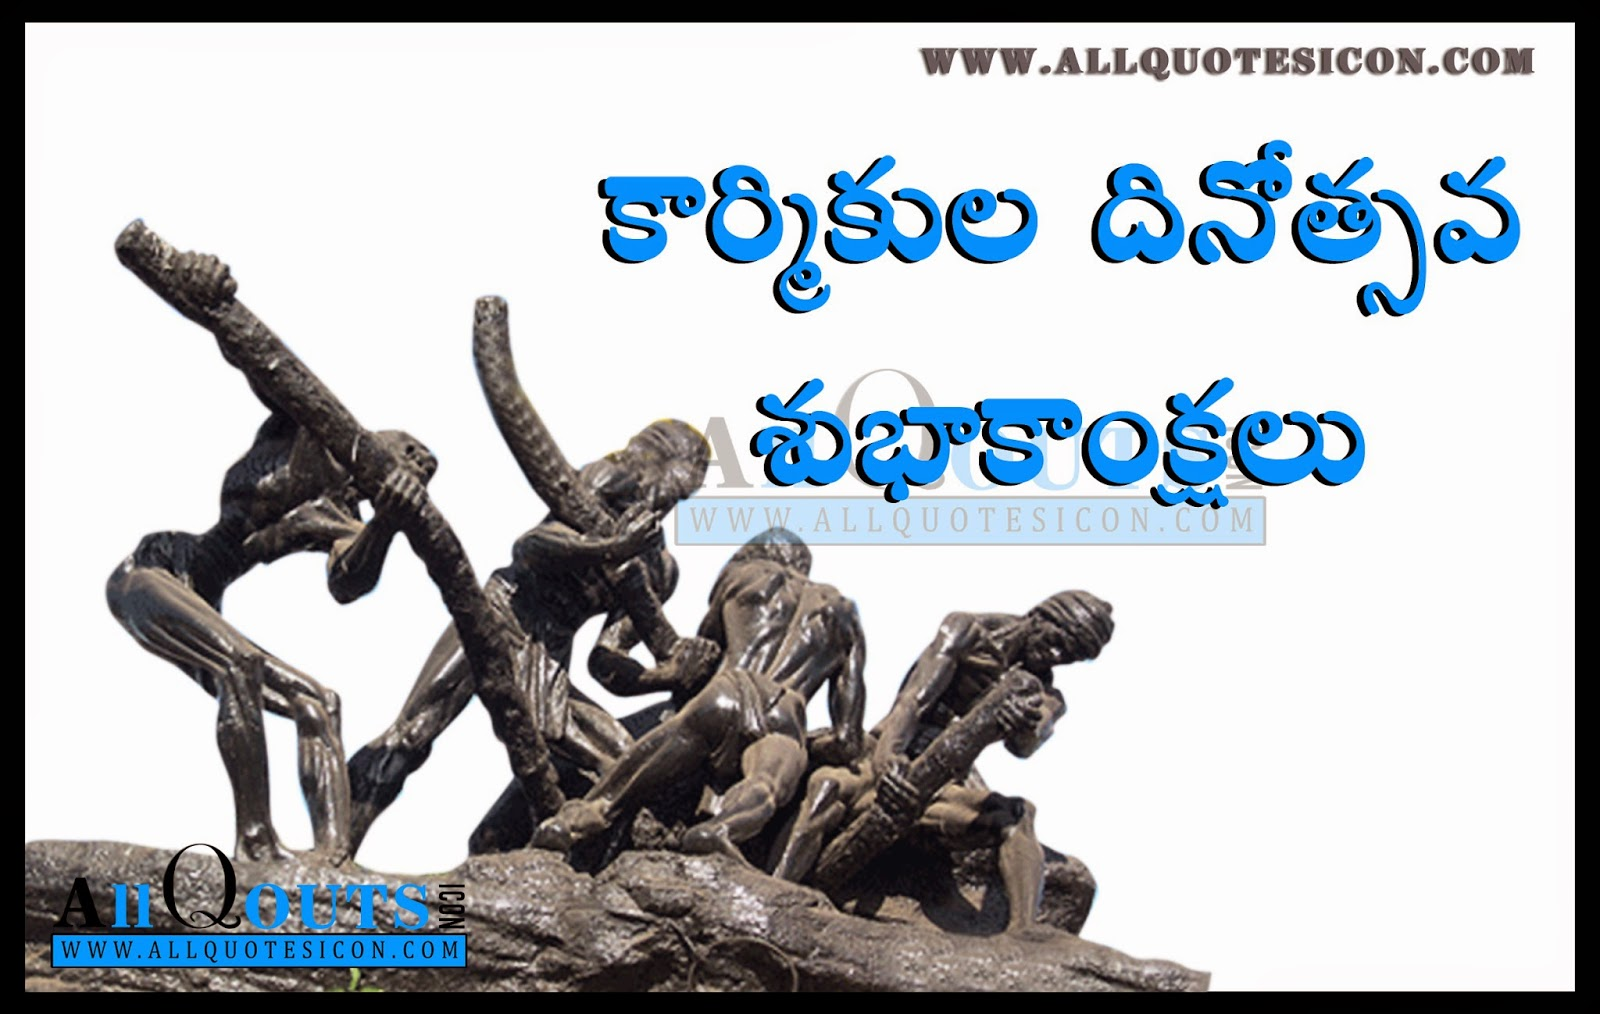 International workers day wishes in telugu hd wallpapers best may best telugu quotes images wishes greetings pictures wallpaper may day m4hsunfo